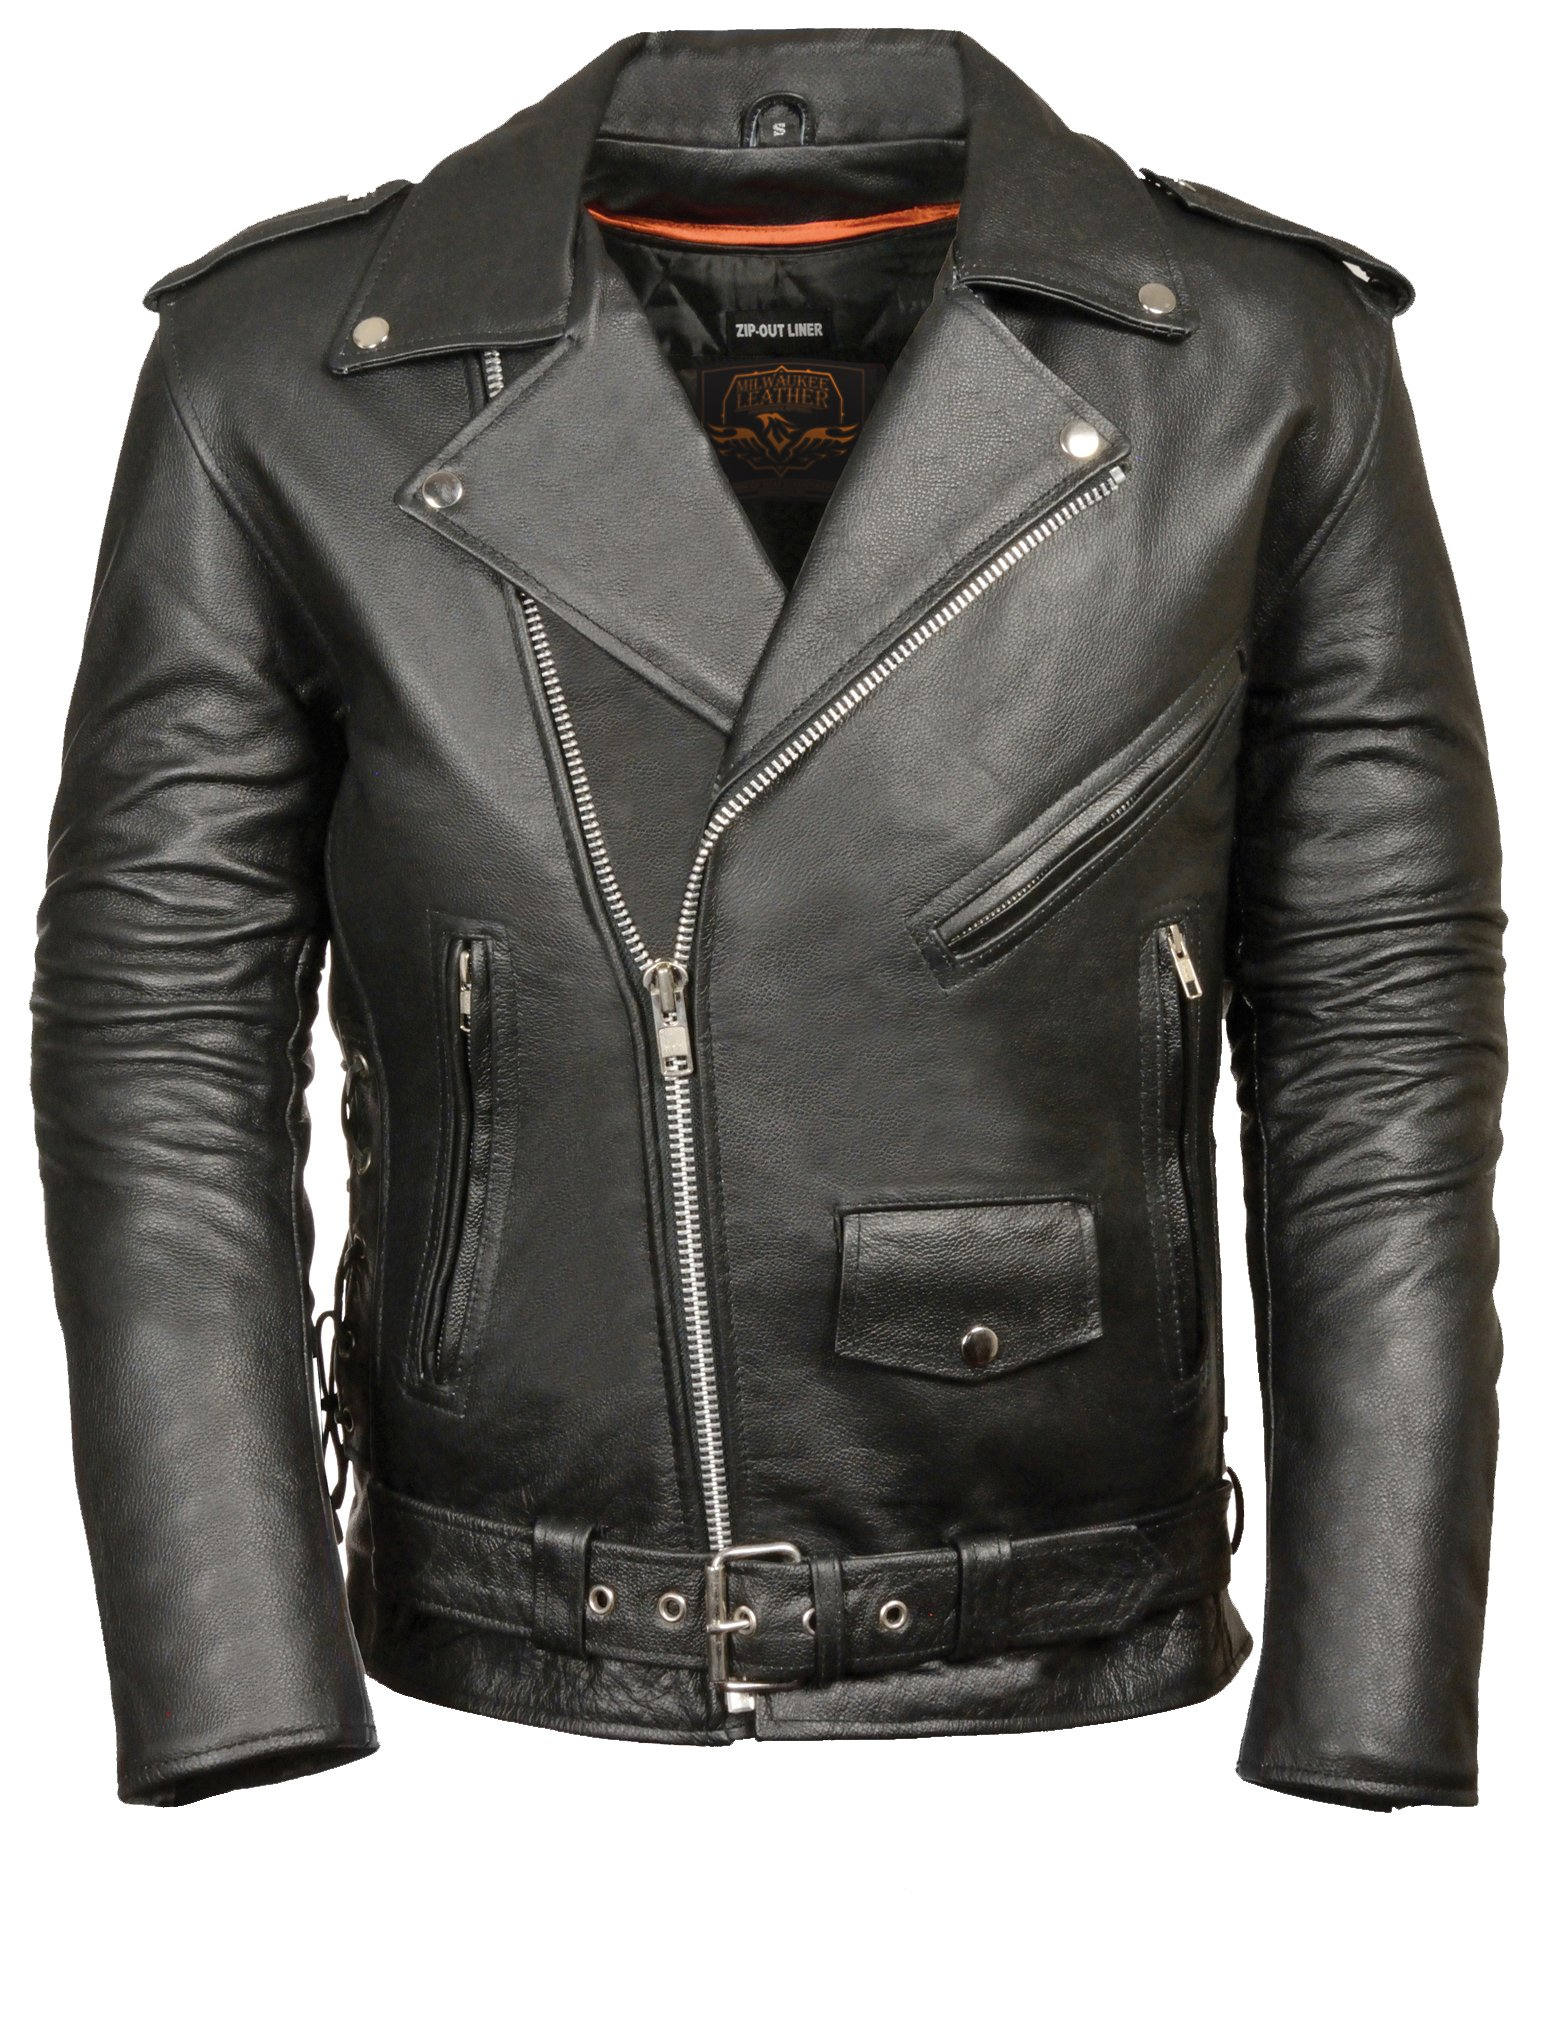 MILWAUKEE LEATHER Men's Classic Side Lace Police Style Motorcycle Jacket (Black, XX-Large)